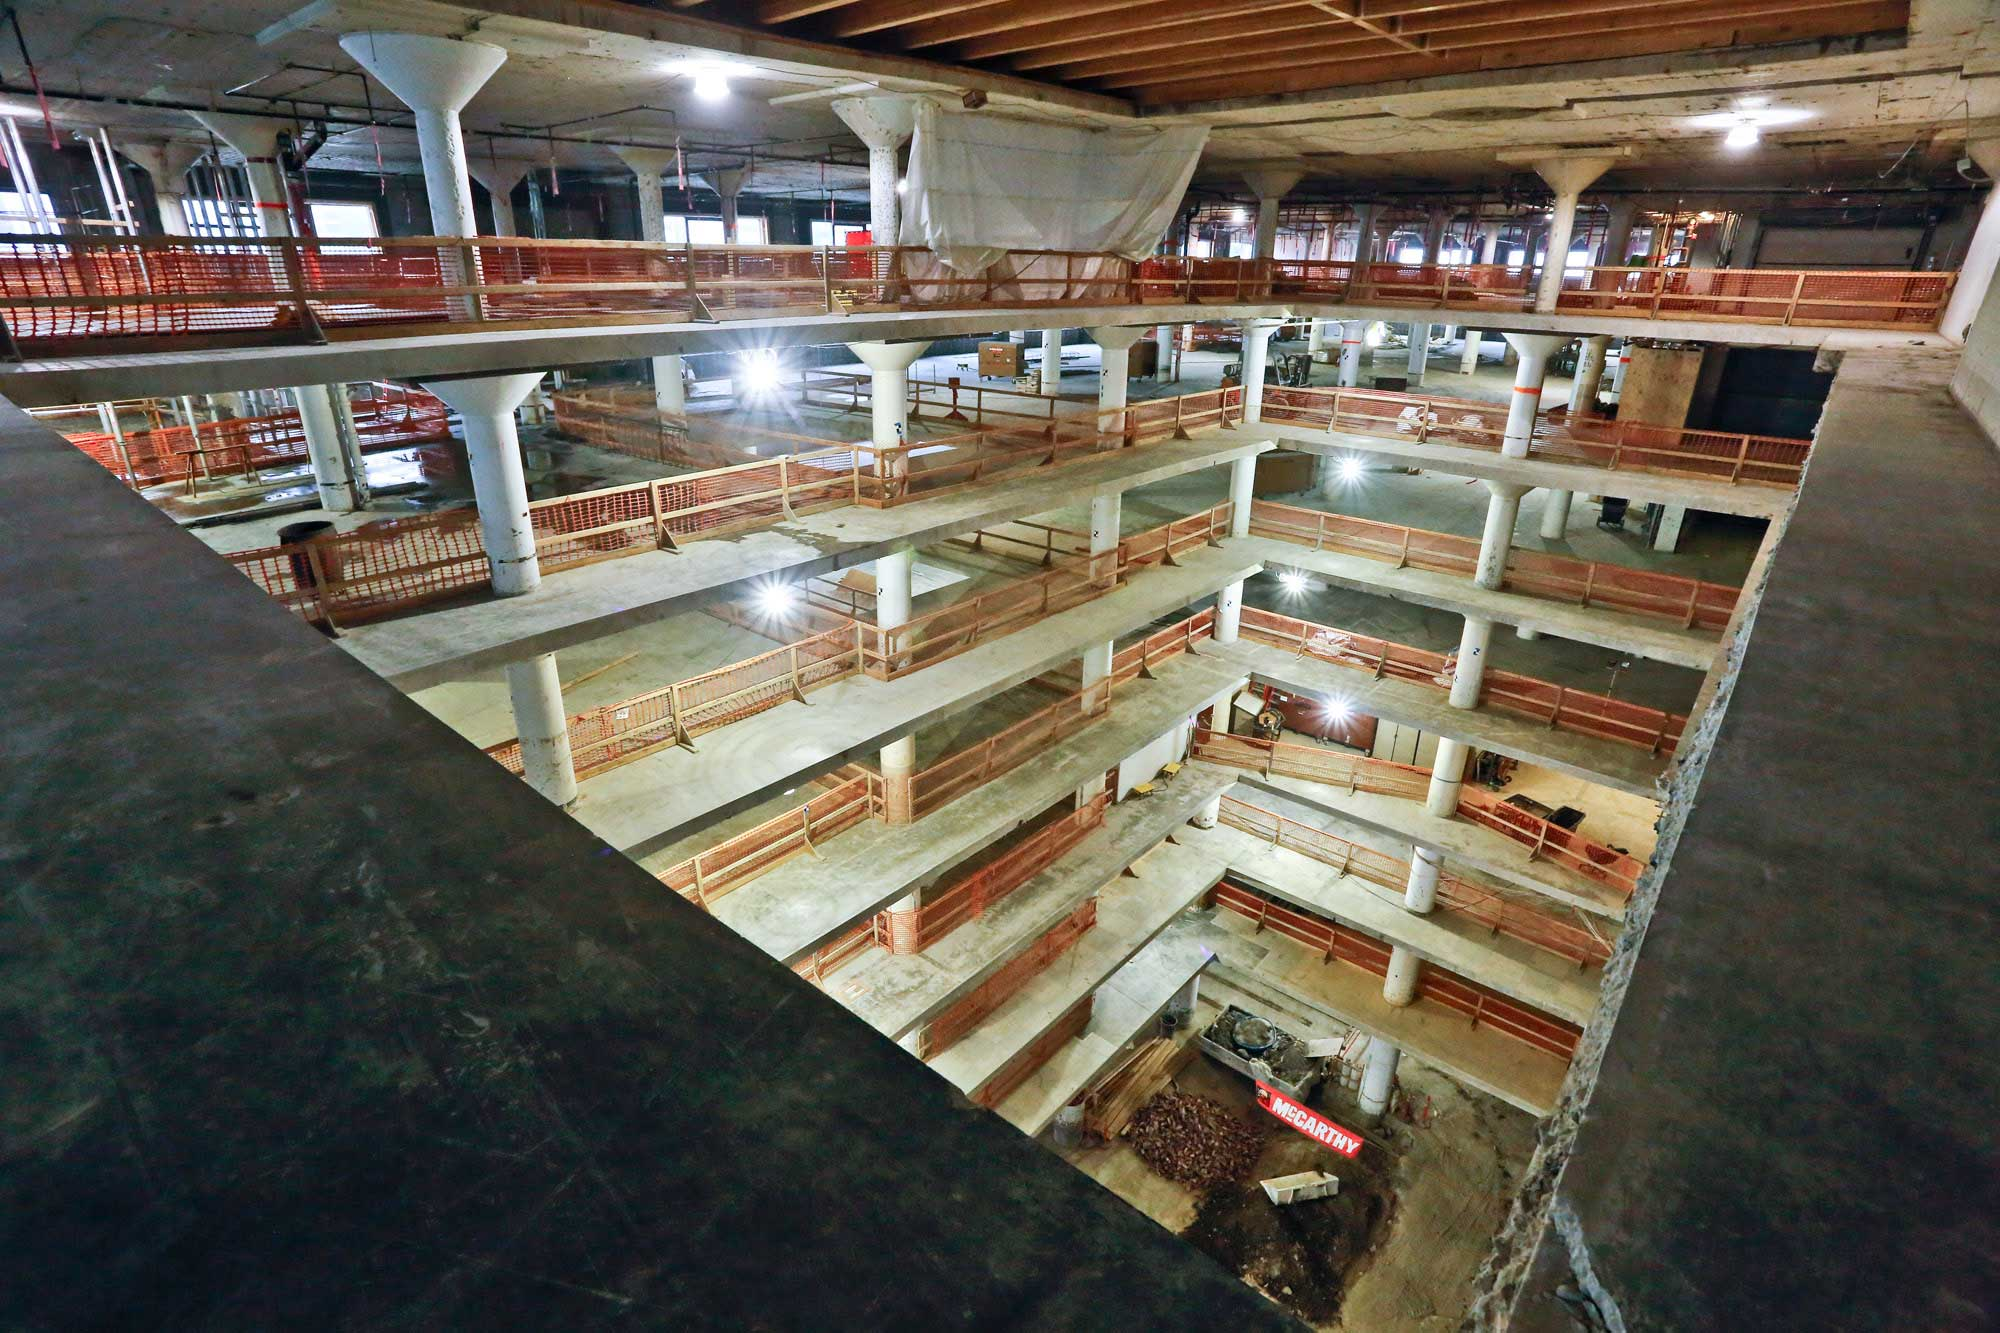 The current seismic retroffiting phase follows the demolition of the walls and the carving of the atrium.